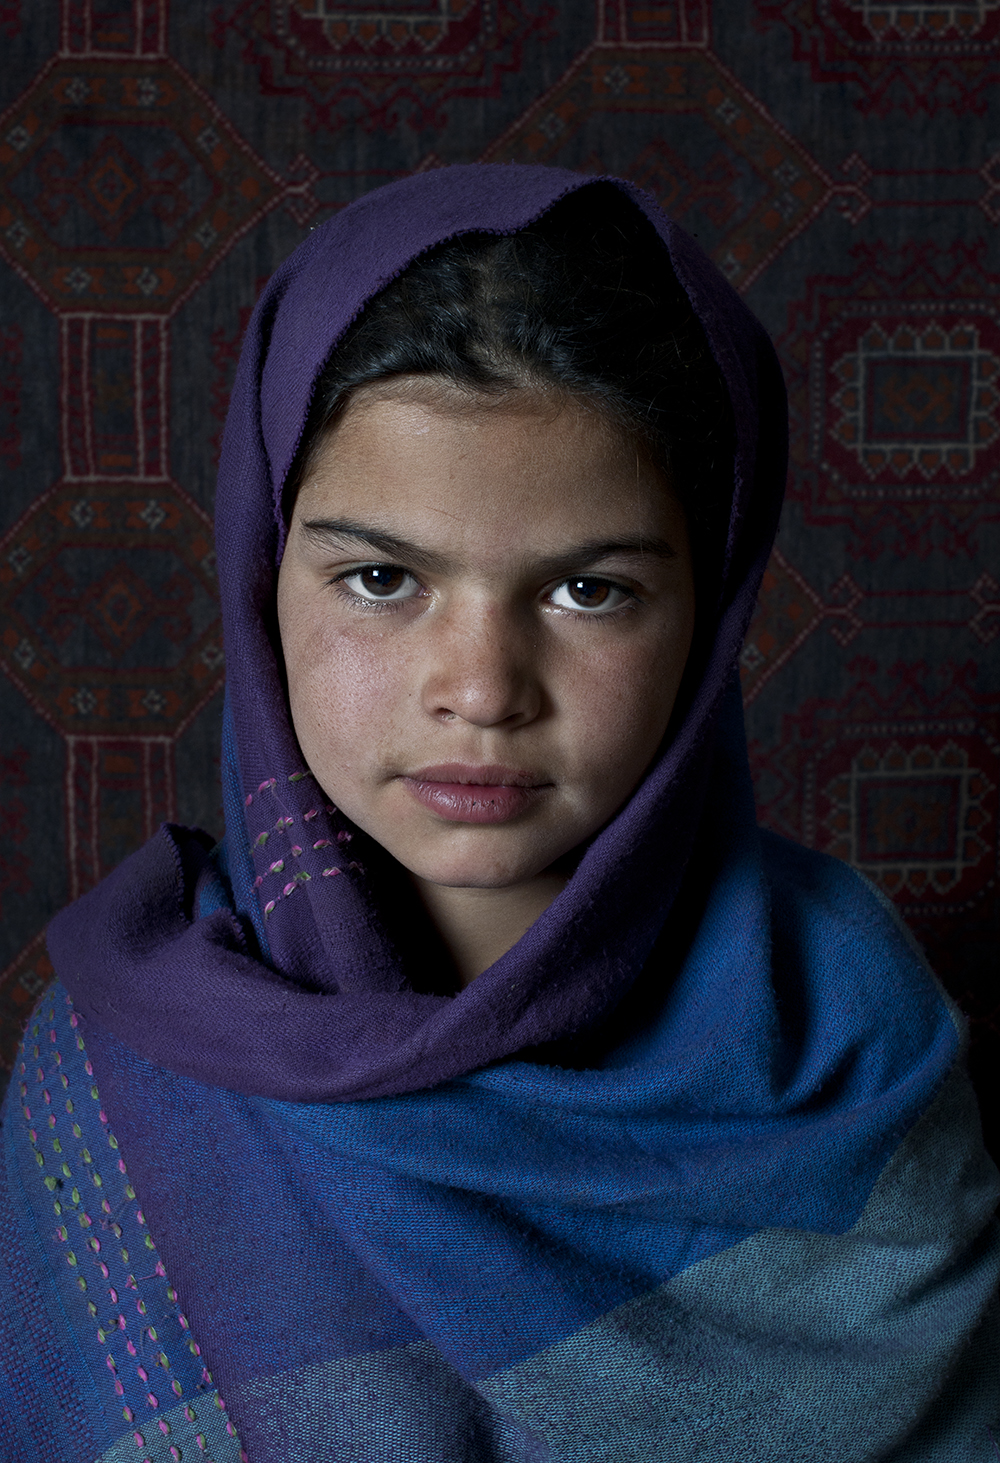 Faces of Kabul Alexandra Bald